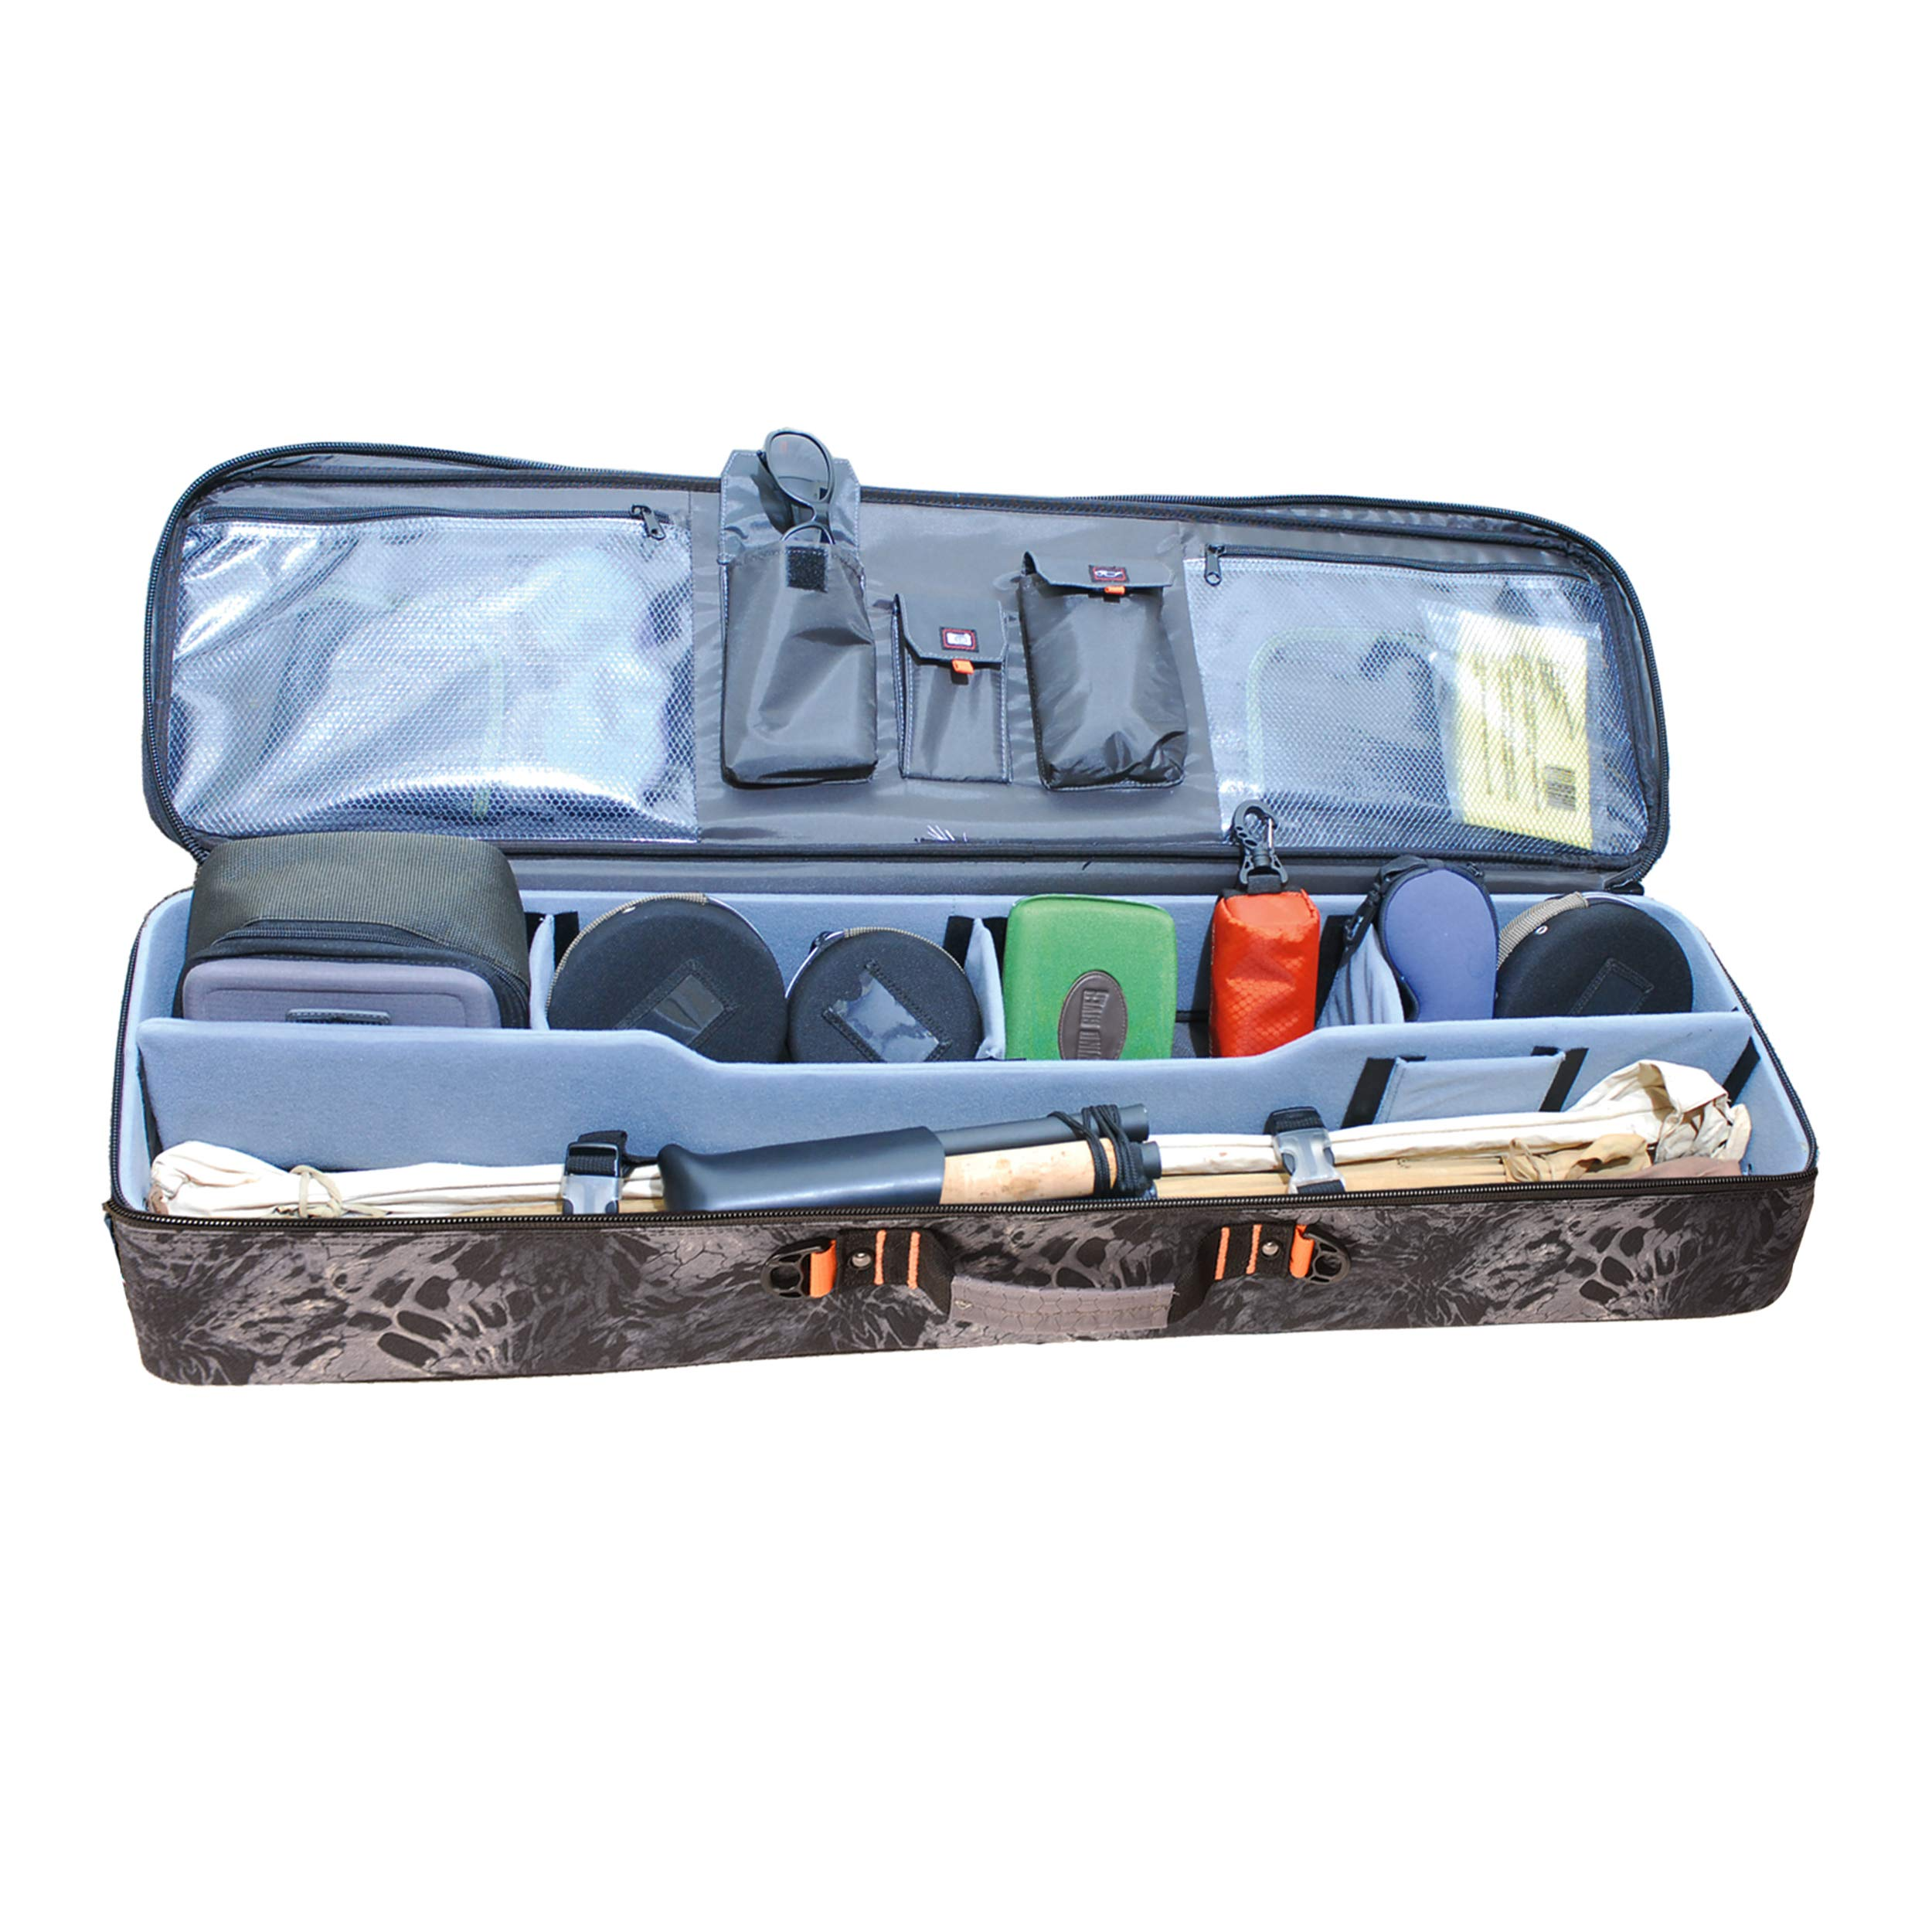 GPS Fly Rod and Reel Travel Case by G5 Outdoors